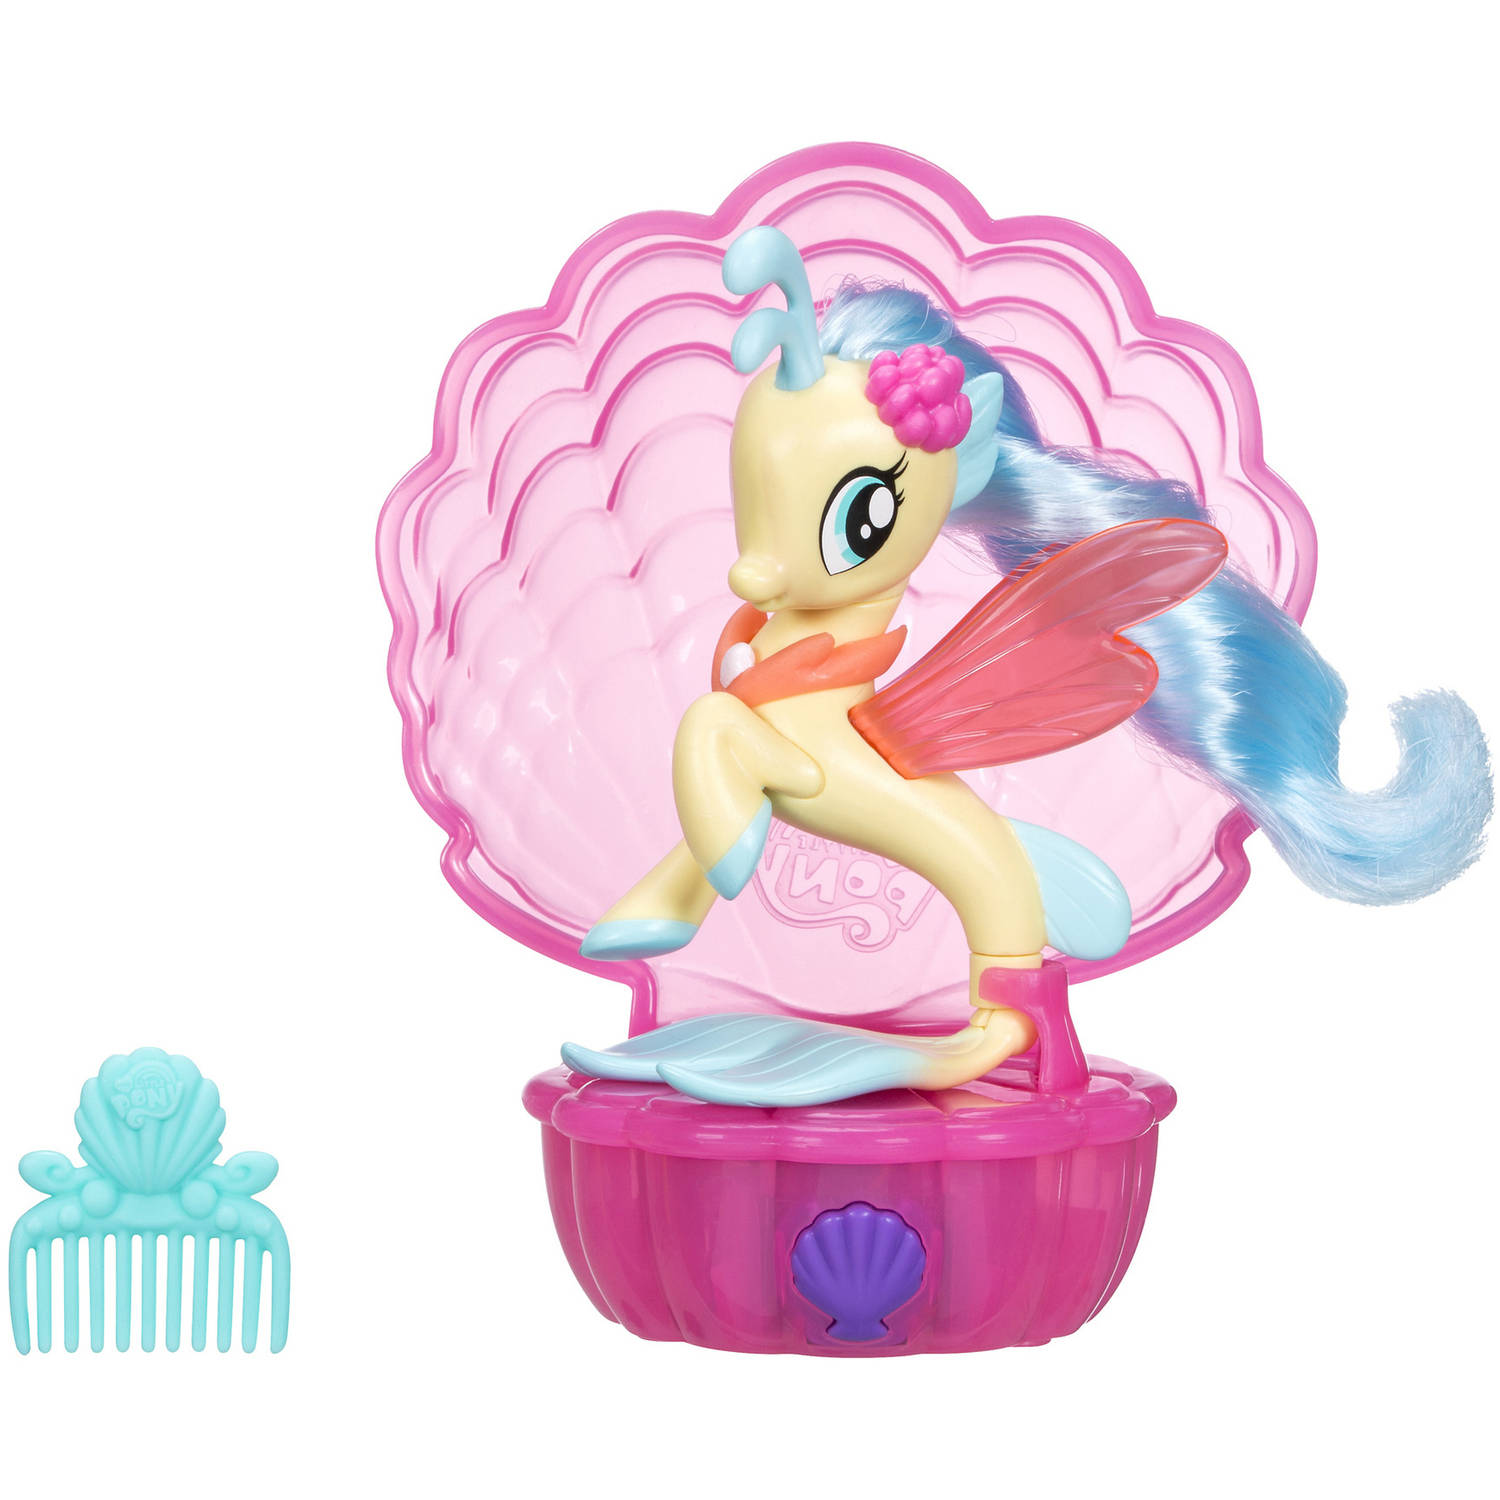 My Little Pony: The Movie Princess Skystar Sea Song by Hasbro